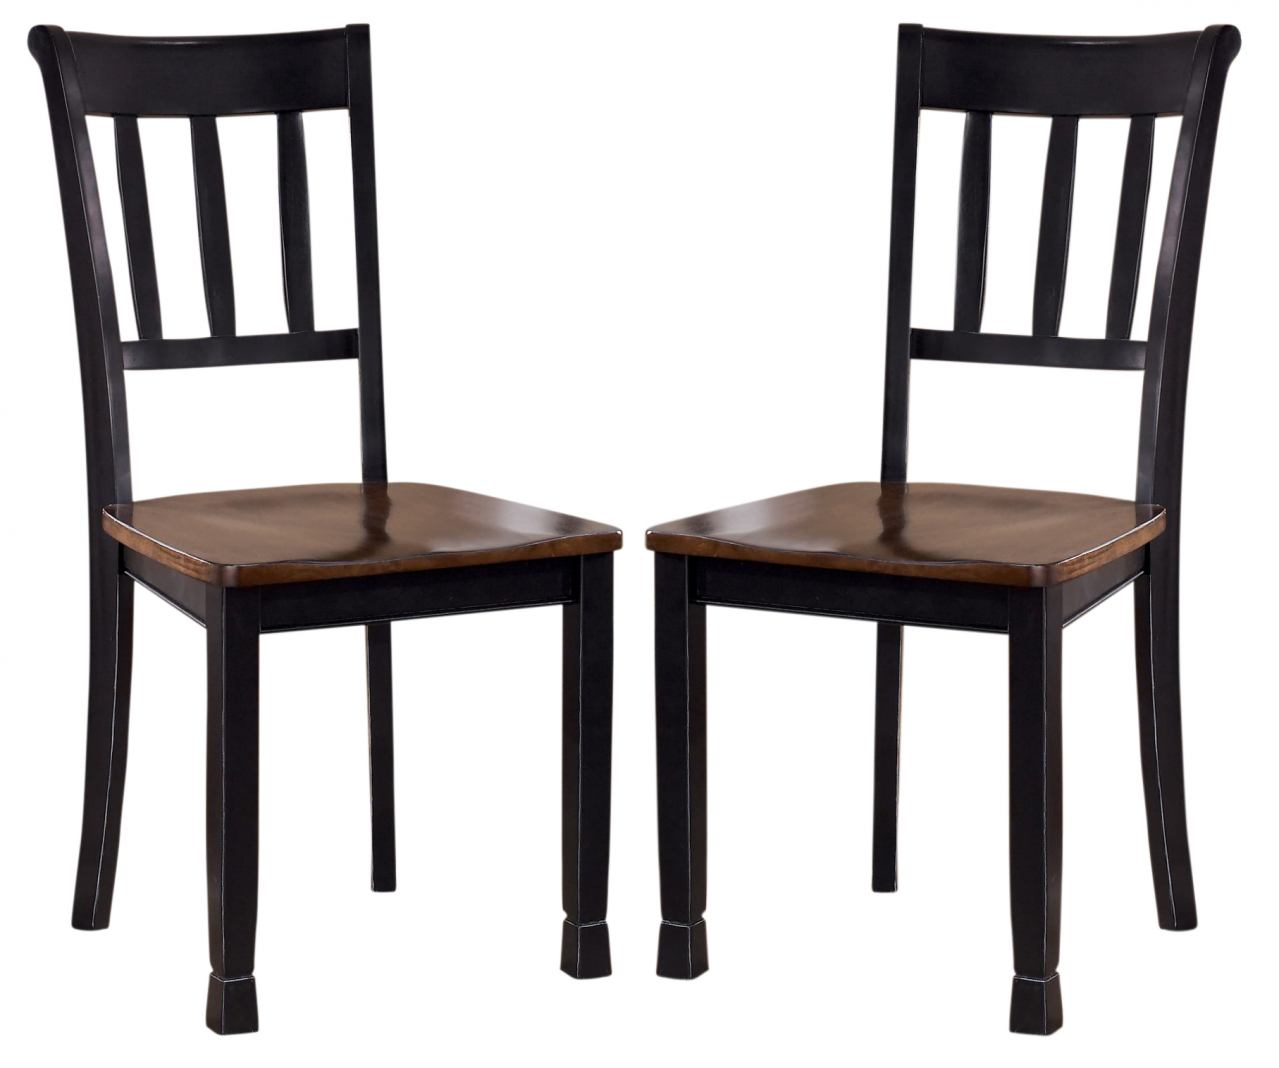 Owingsville Slat Back Side Chair in Black & Brown (Set of 2) D580-02 CLEARANCE